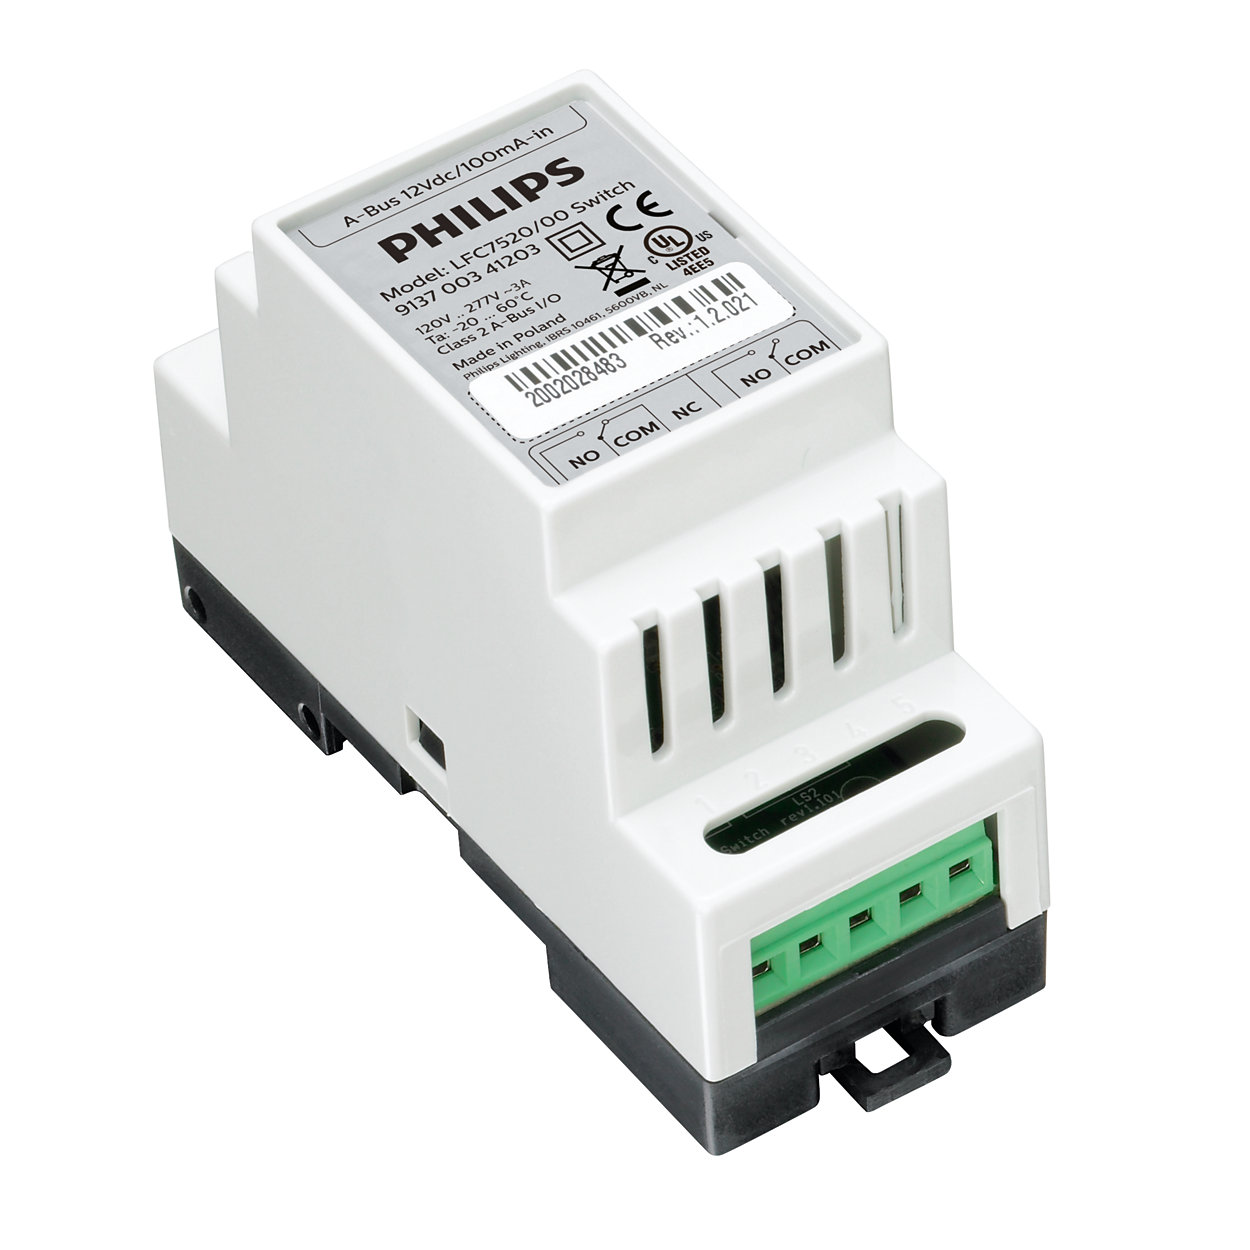 Lfc7520 amplight switch amplight philips lighting for Catalogue philips eclairage exterieur